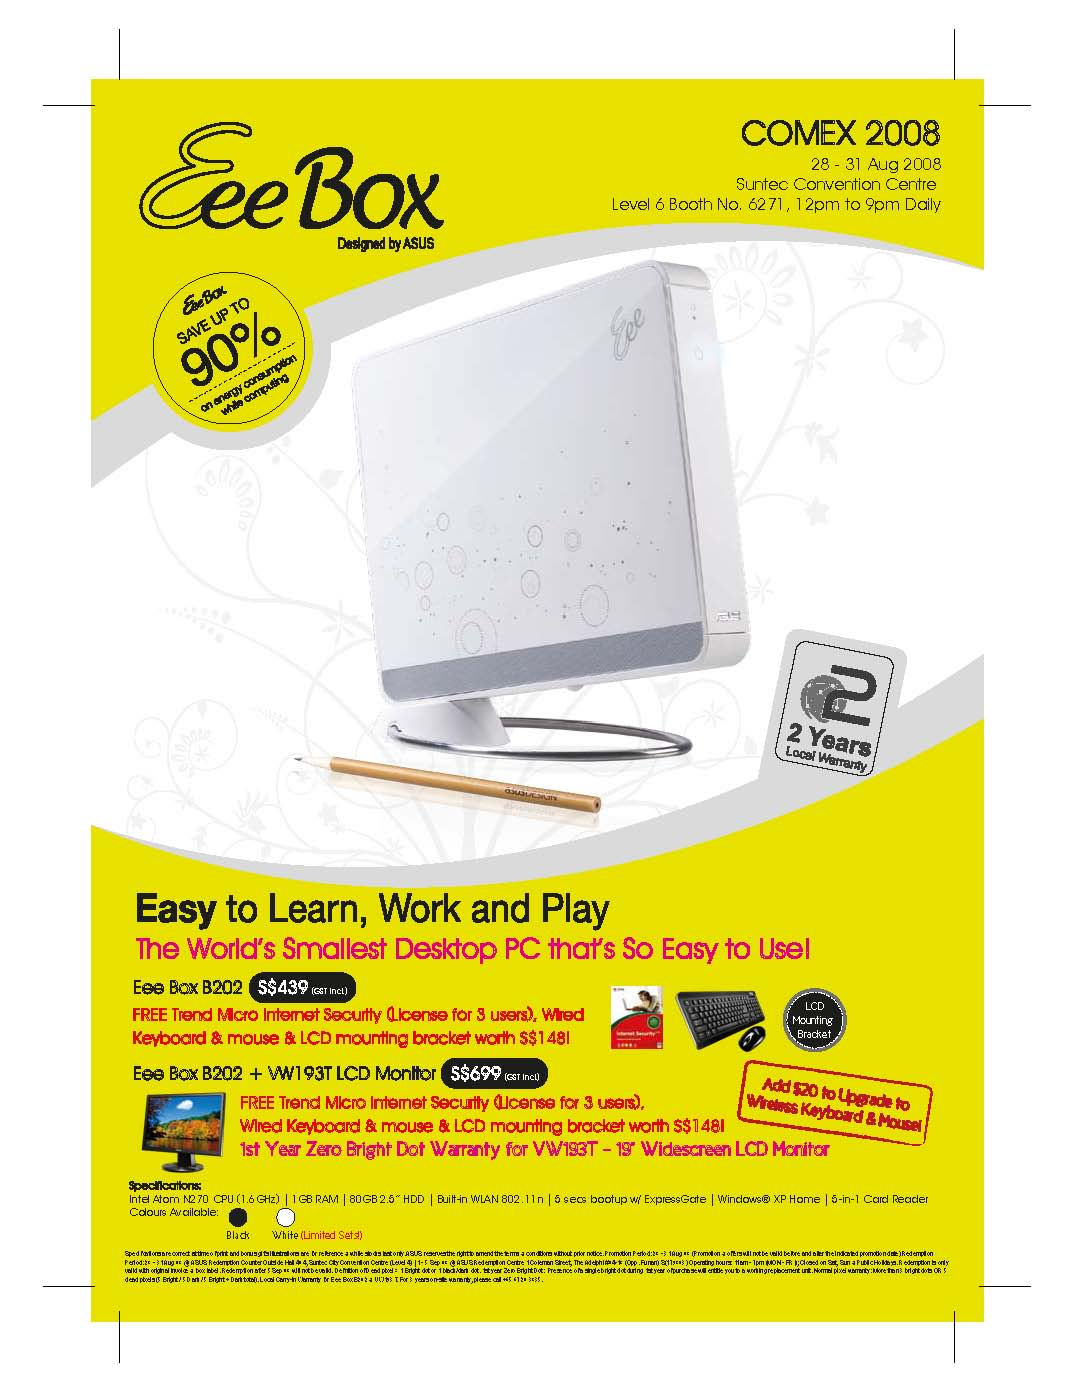 Comex 2008 price list image brochure of Asus EeeBox Flyer